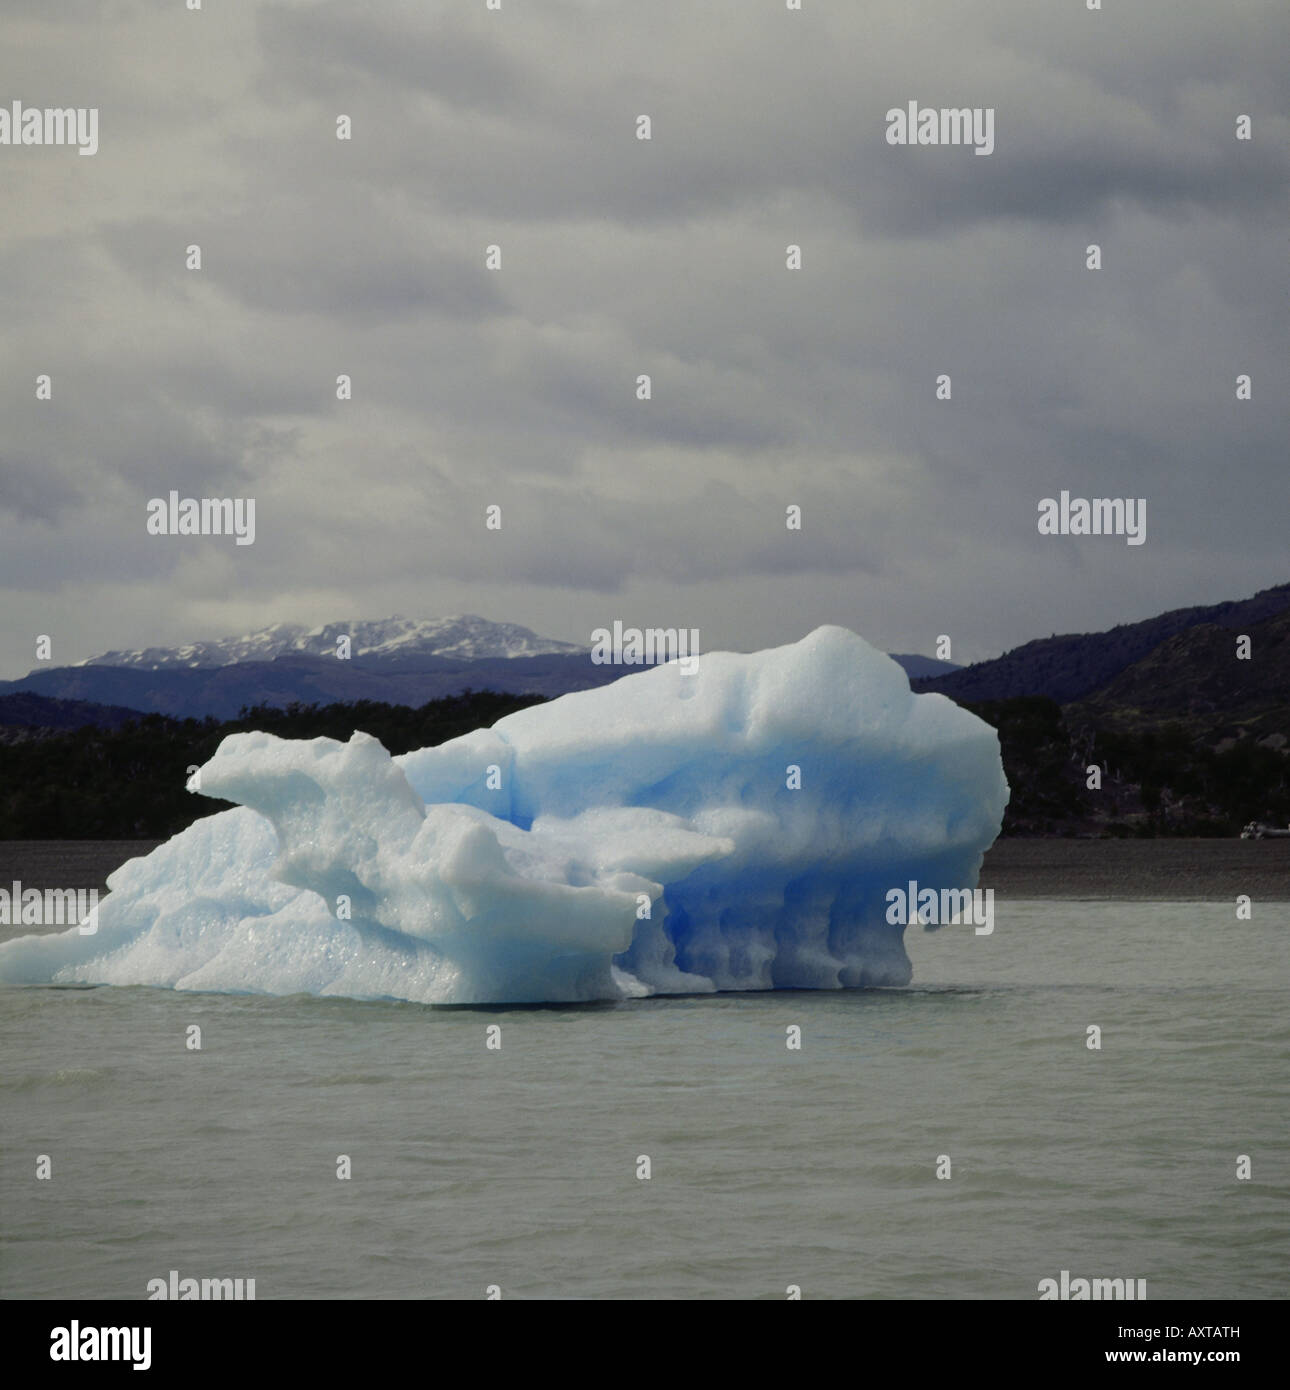 Travel Geography: Geography Soam Stock Photos & Geography Soam Stock Images